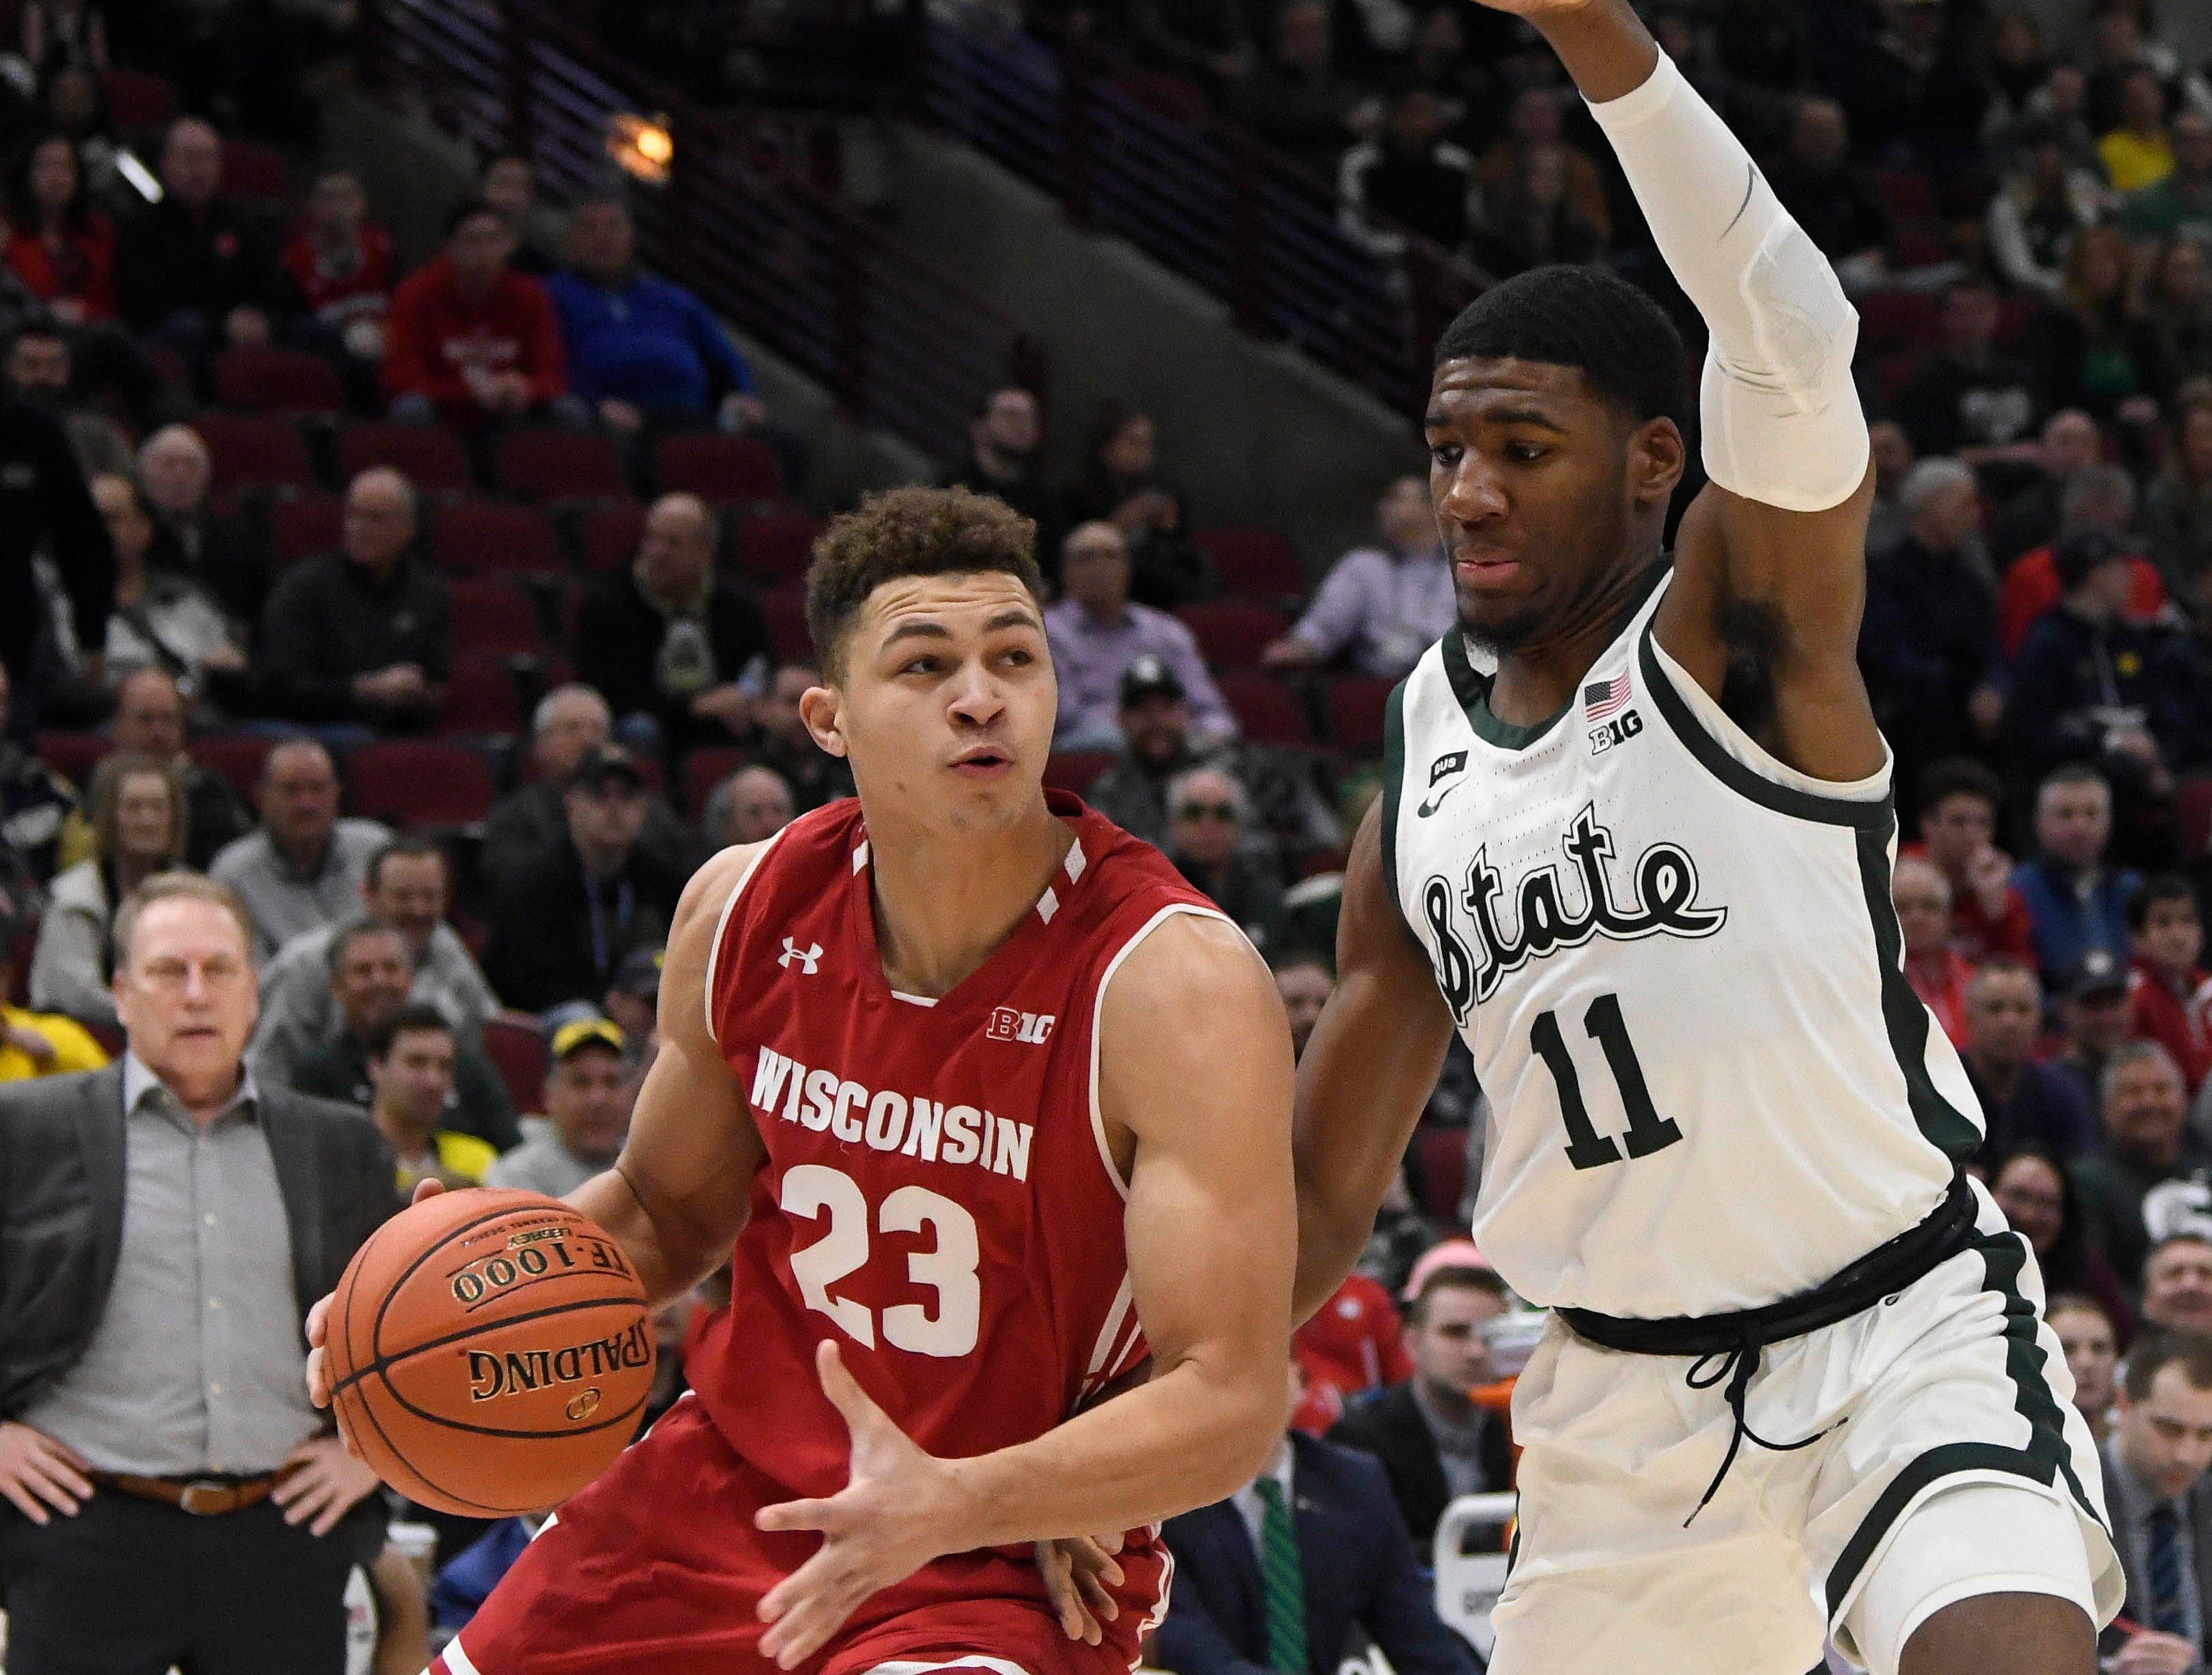 Wisconsin Badgers guard Kobe King (23) dribbles the ball as Michigan State Spartans forward Aaron Henry (11) defends him during the first half in the Big Ten conference tournament at United Center.